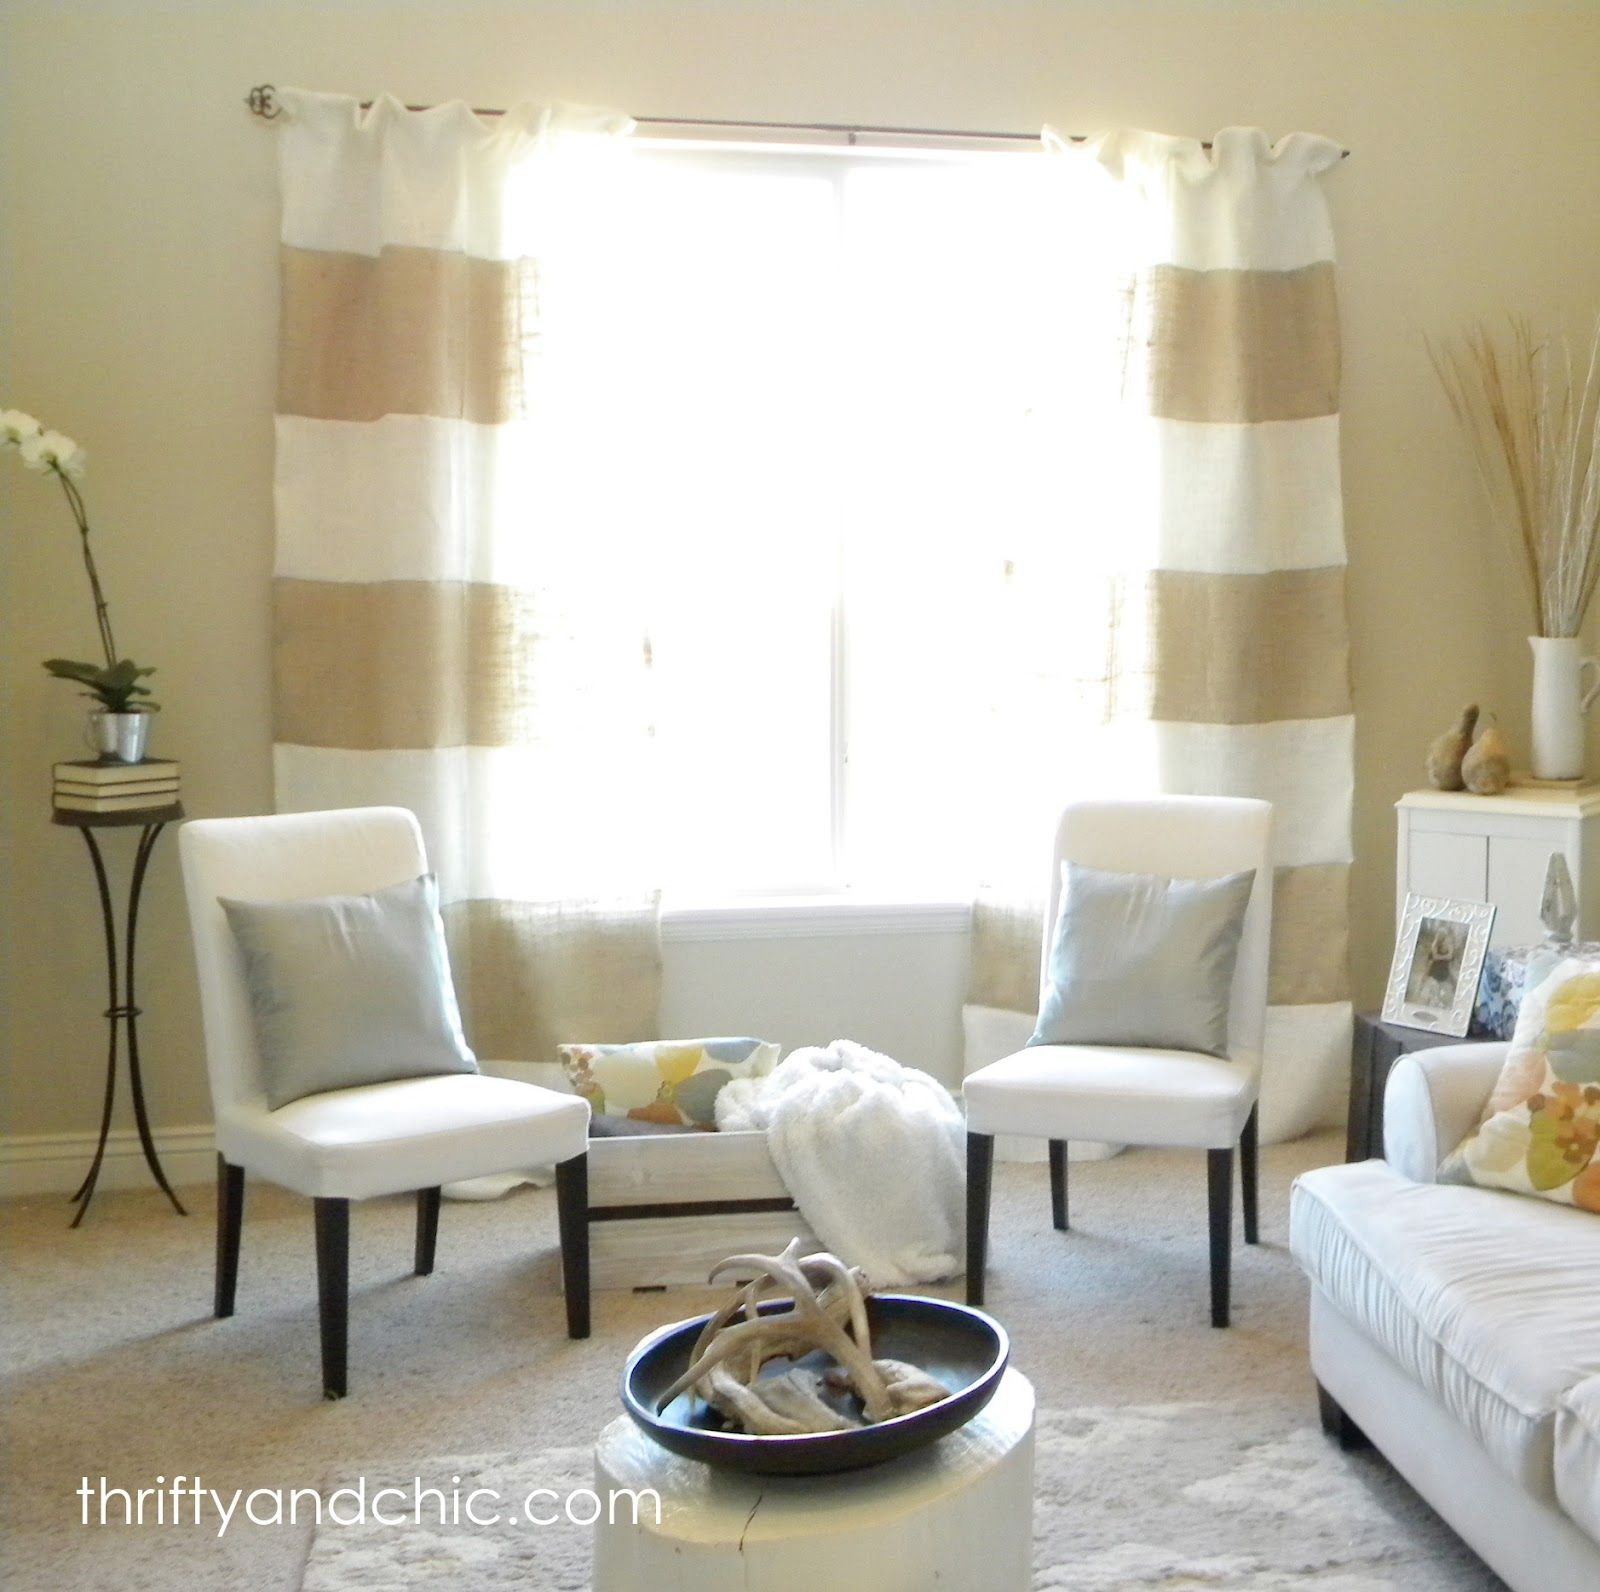 Awesome Thrifty And Chic: Striped Burlap Curtains   How To Make Striped Burlap  Curtains. Great Pictures